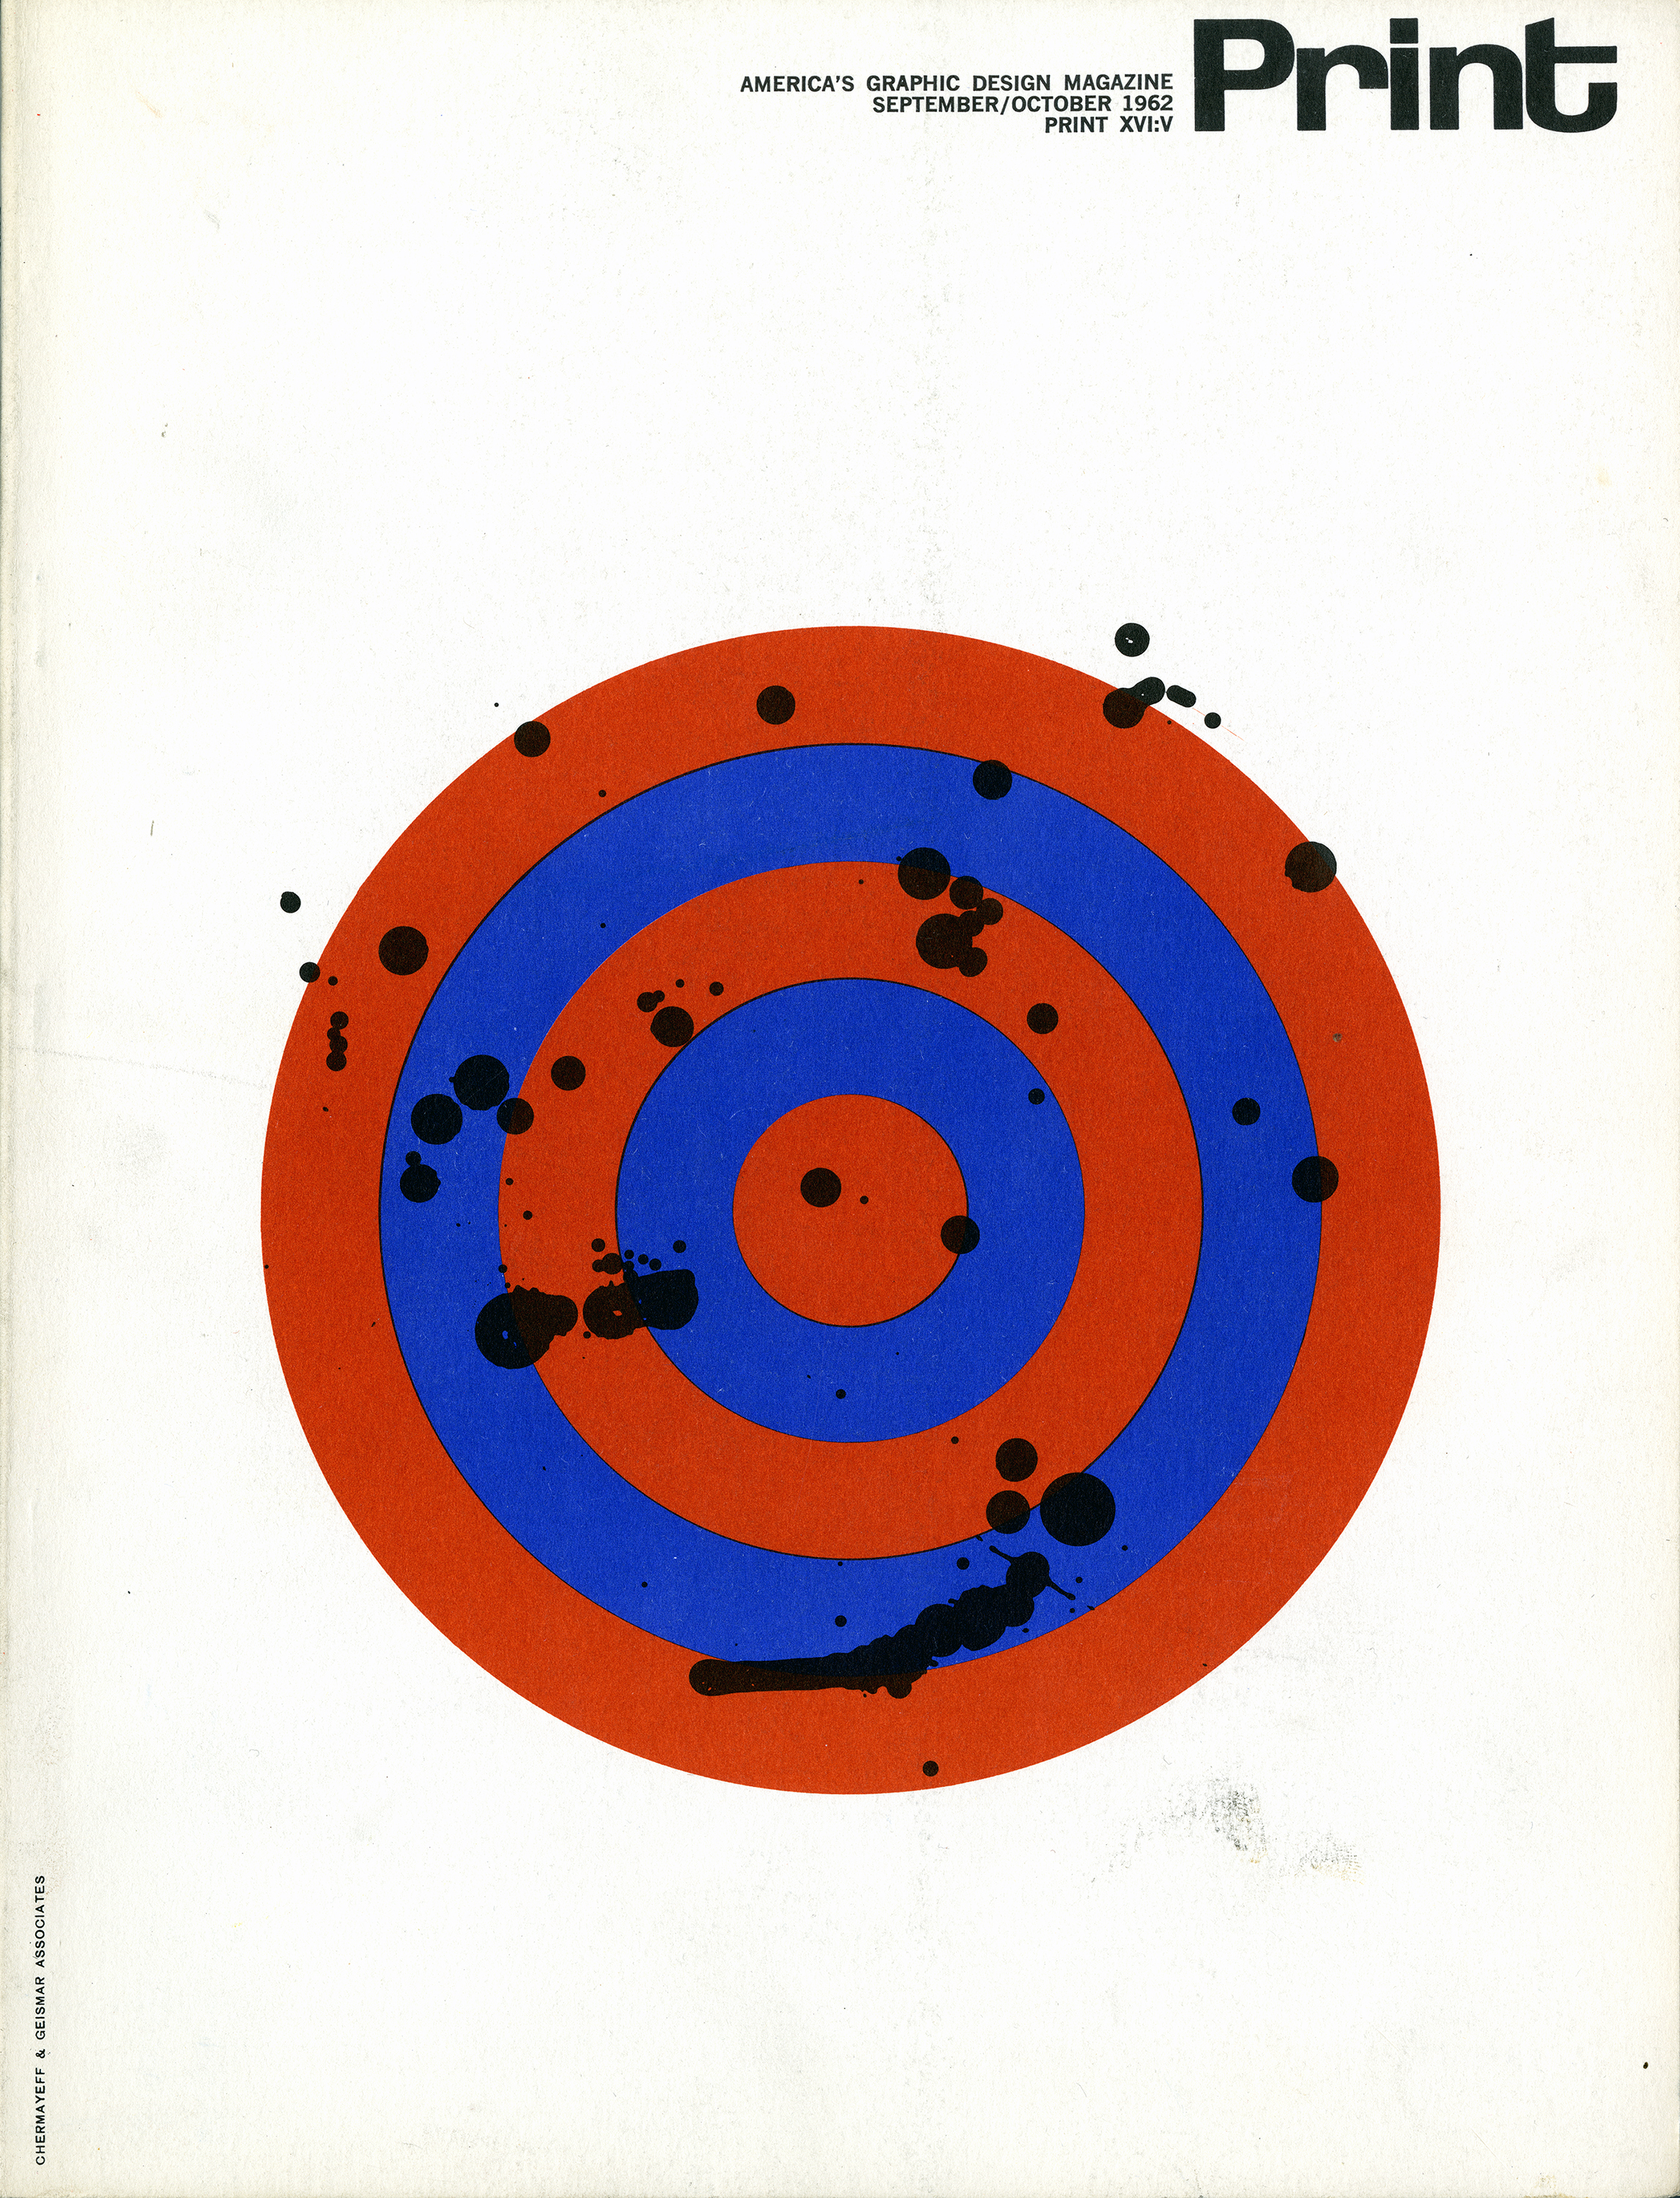 Blue and red graphic of a target covered in black ink splotches against a white background.